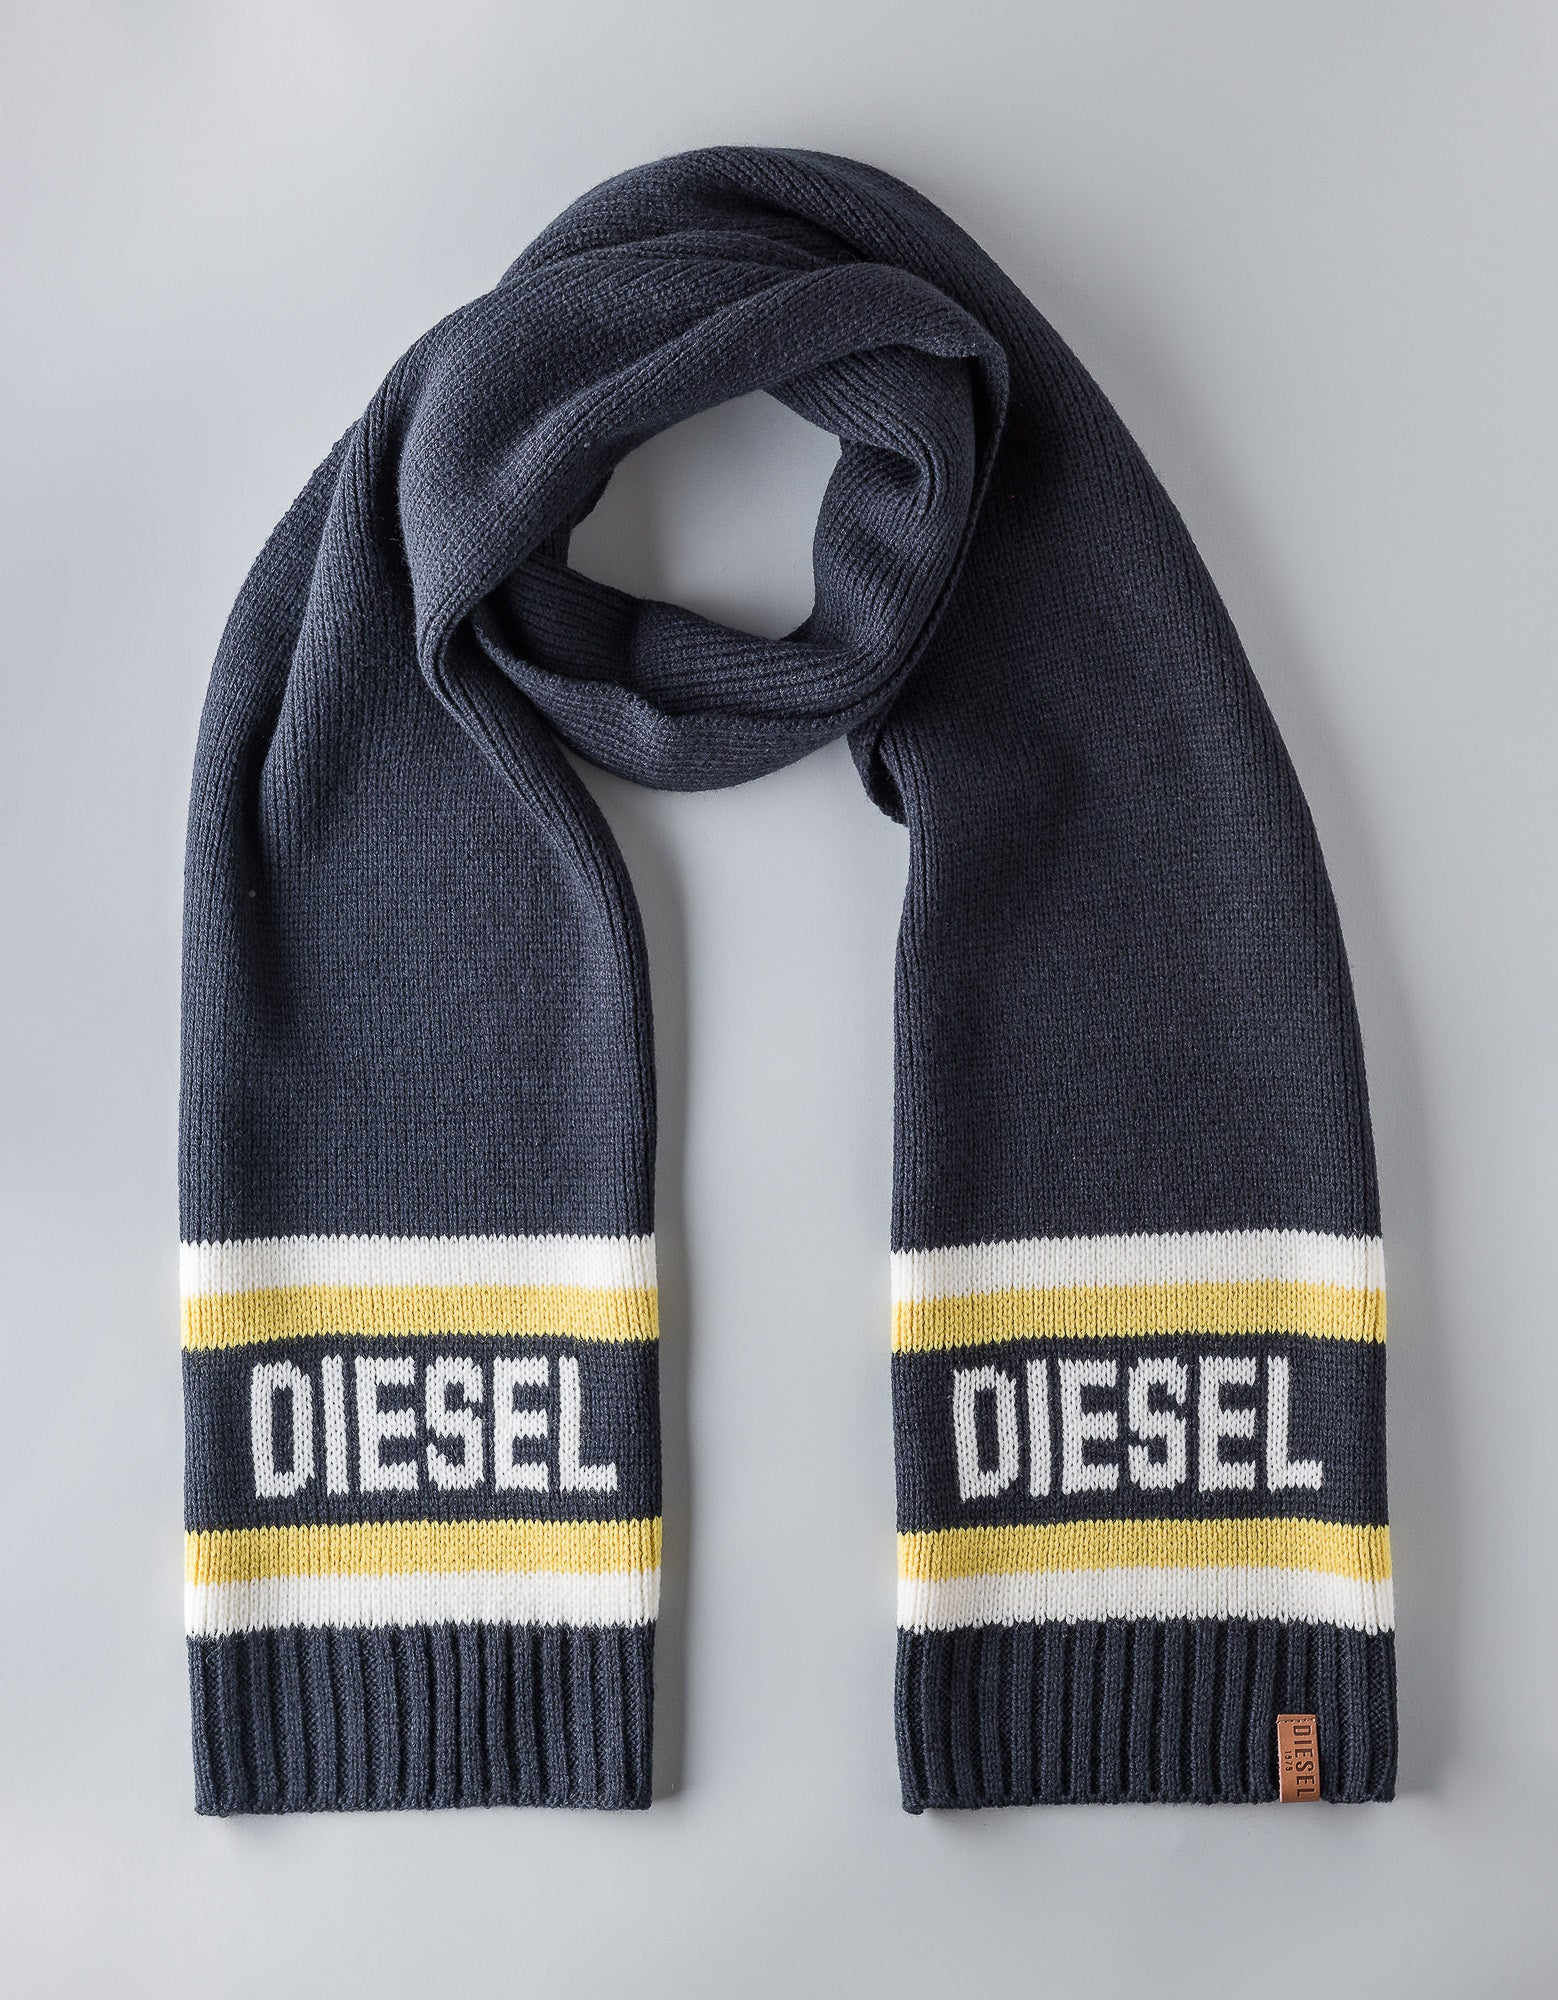 FRANKLIN SCARF IN NAVY